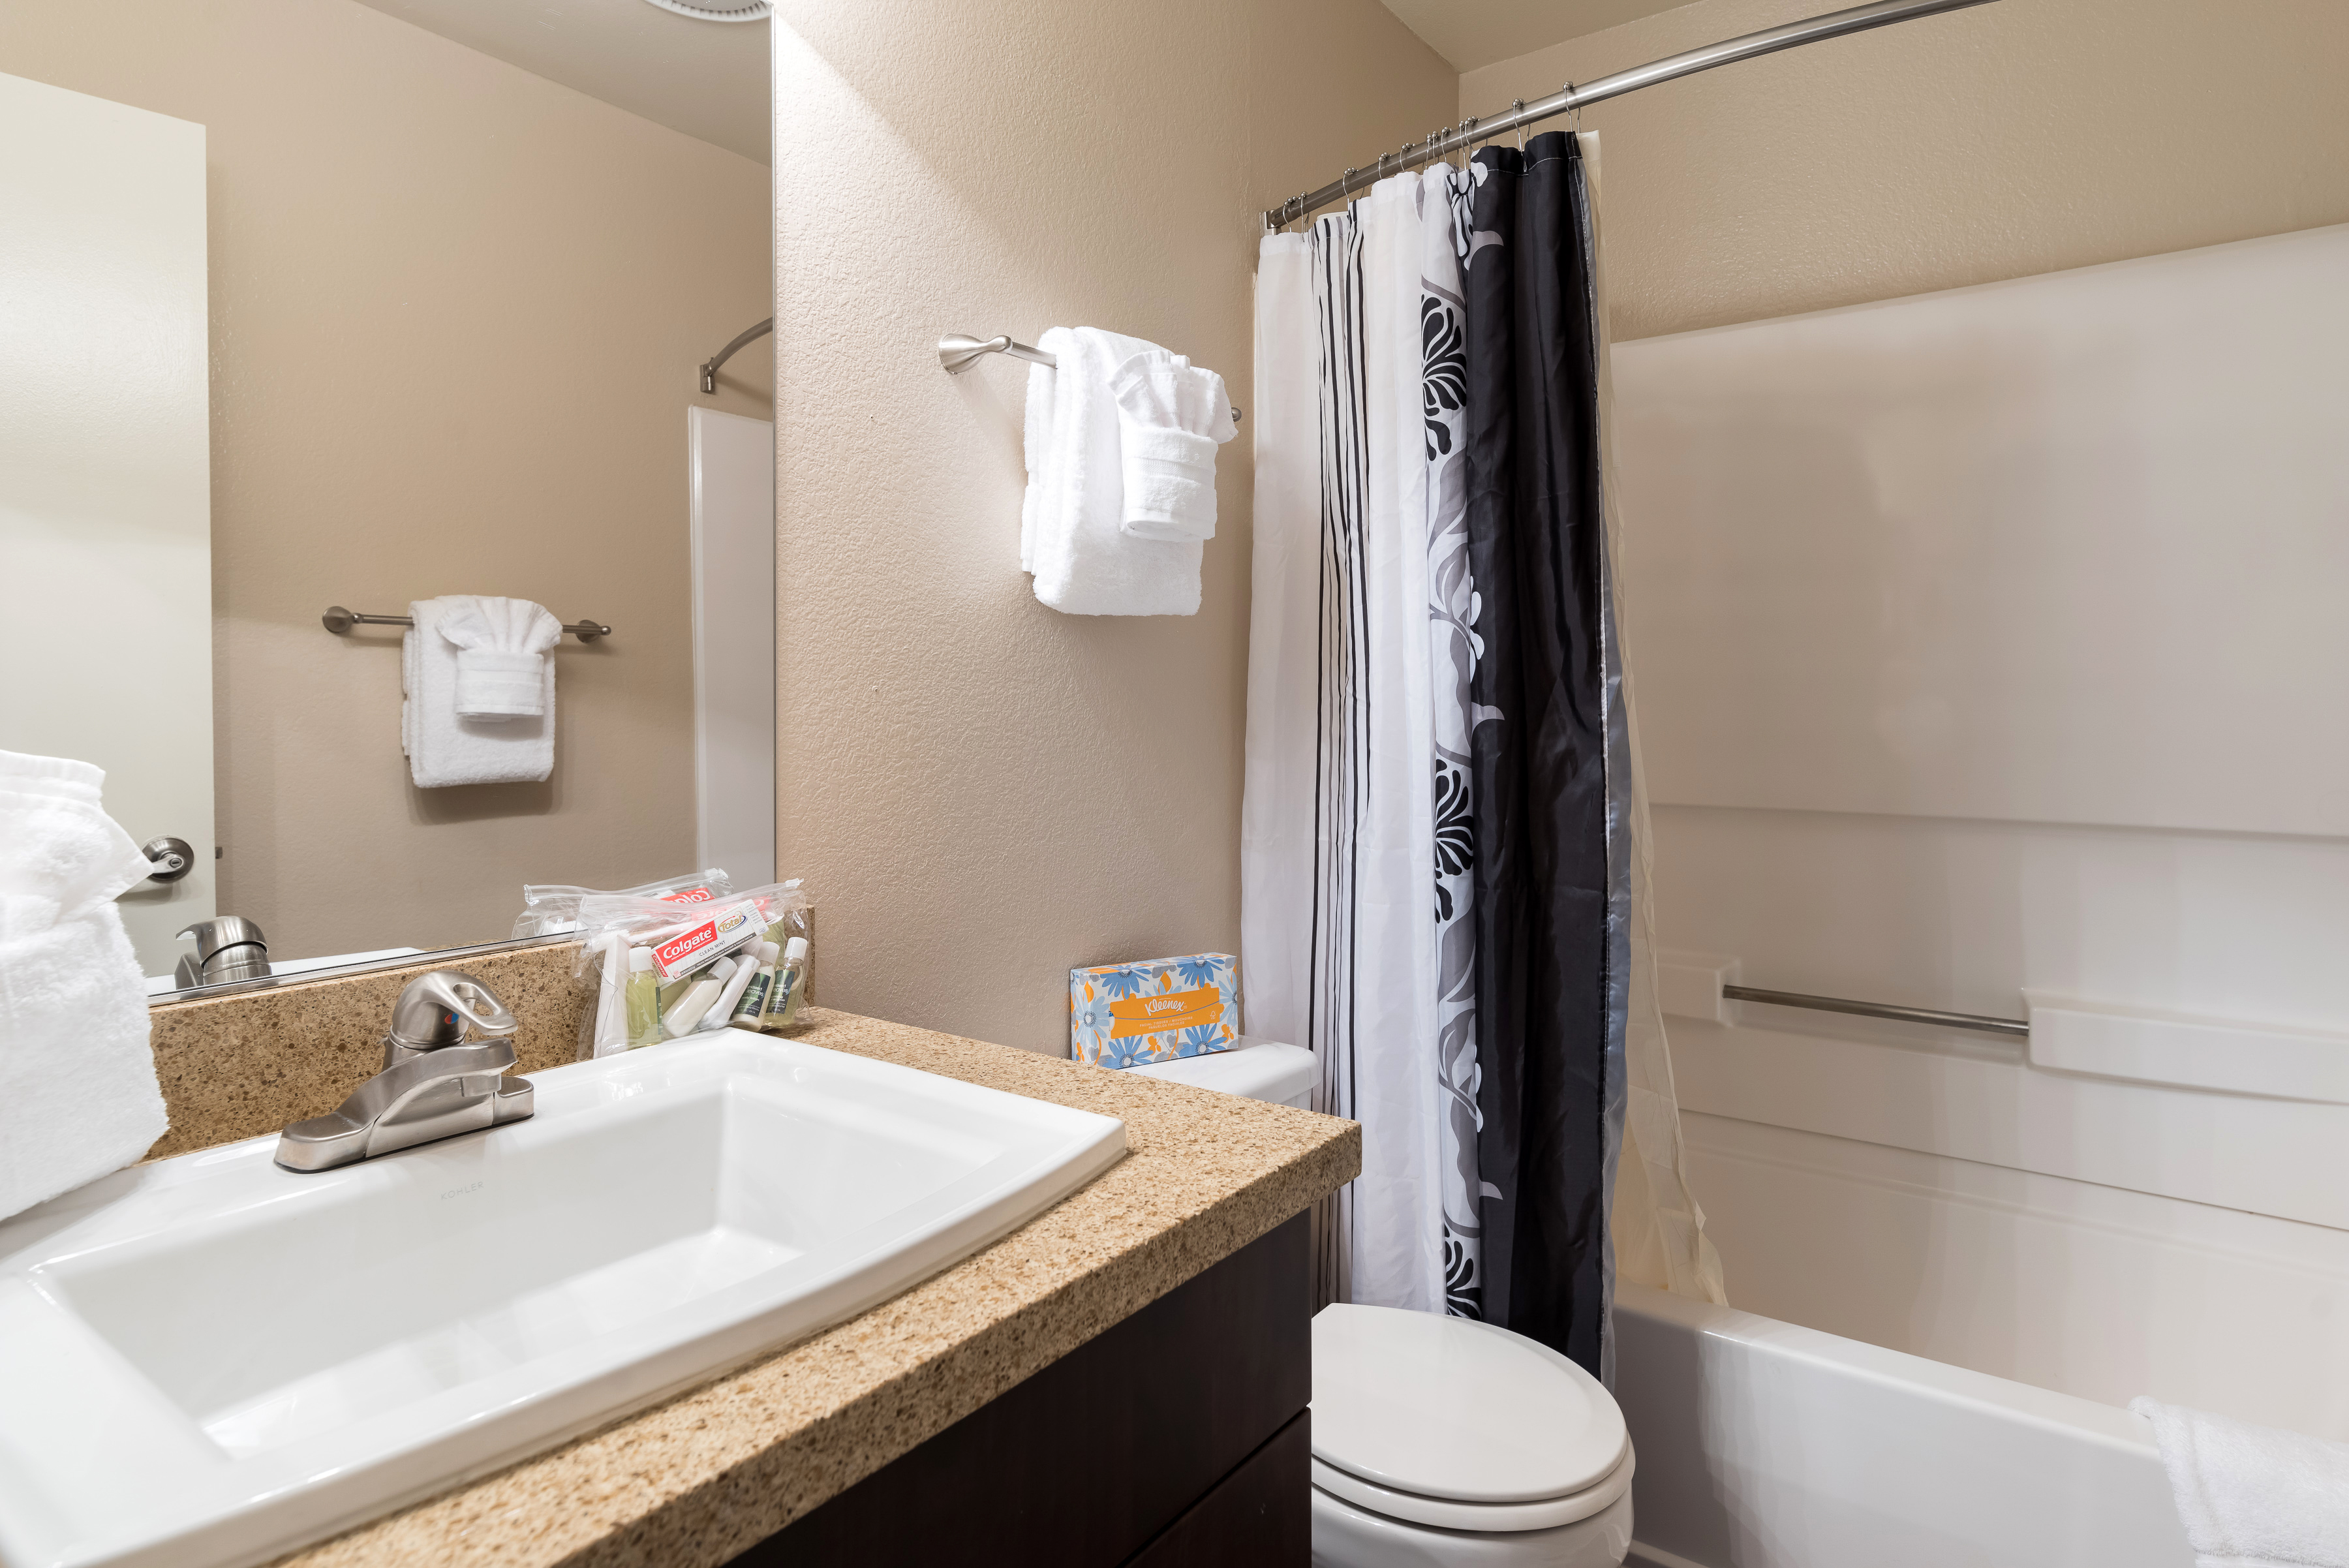 image 2 furnished 2 bedroom Apartment for rent in San Ramon, Contra Costa County